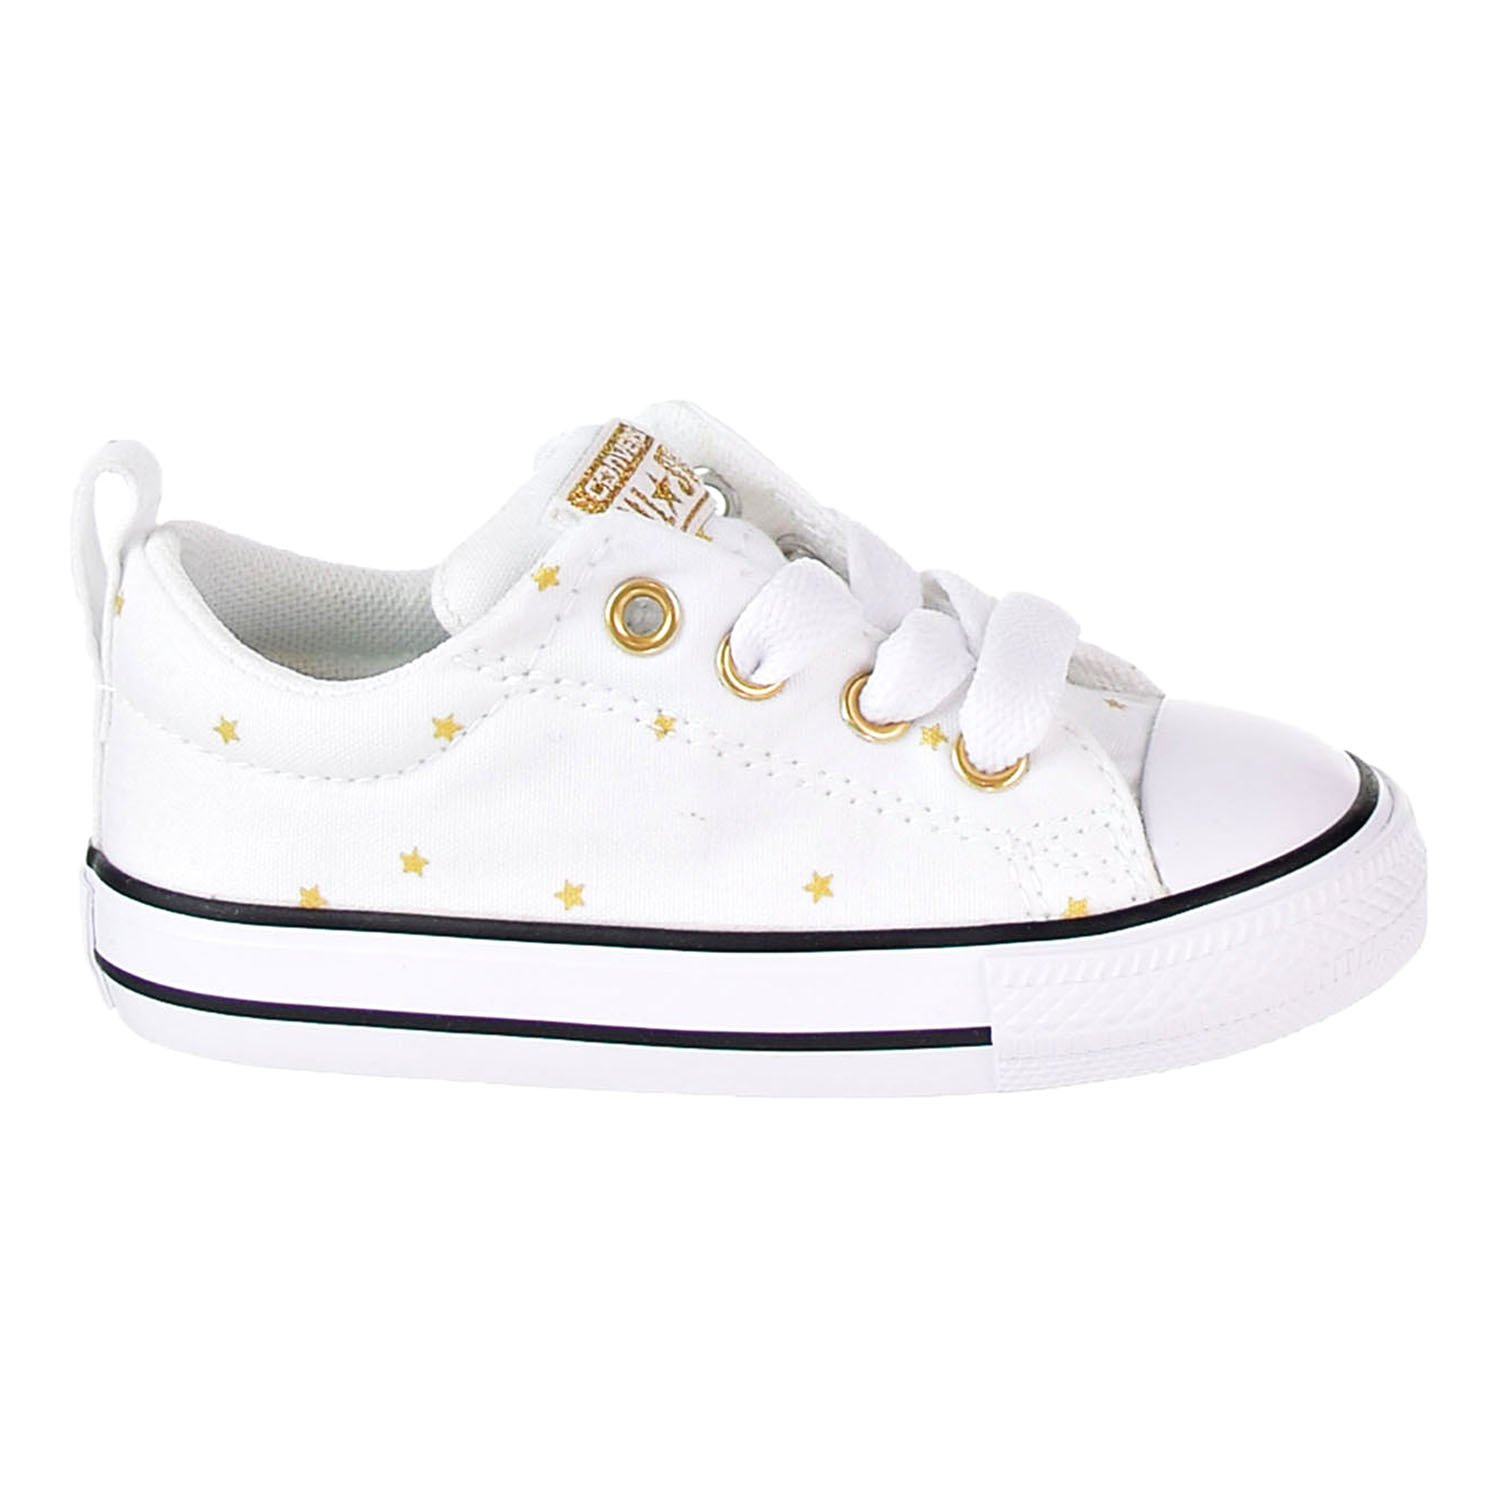 bc13ee60408d6 Converse Chuck Taylor All Star Street Slip Little Kid's Shoes White/Black  760874f